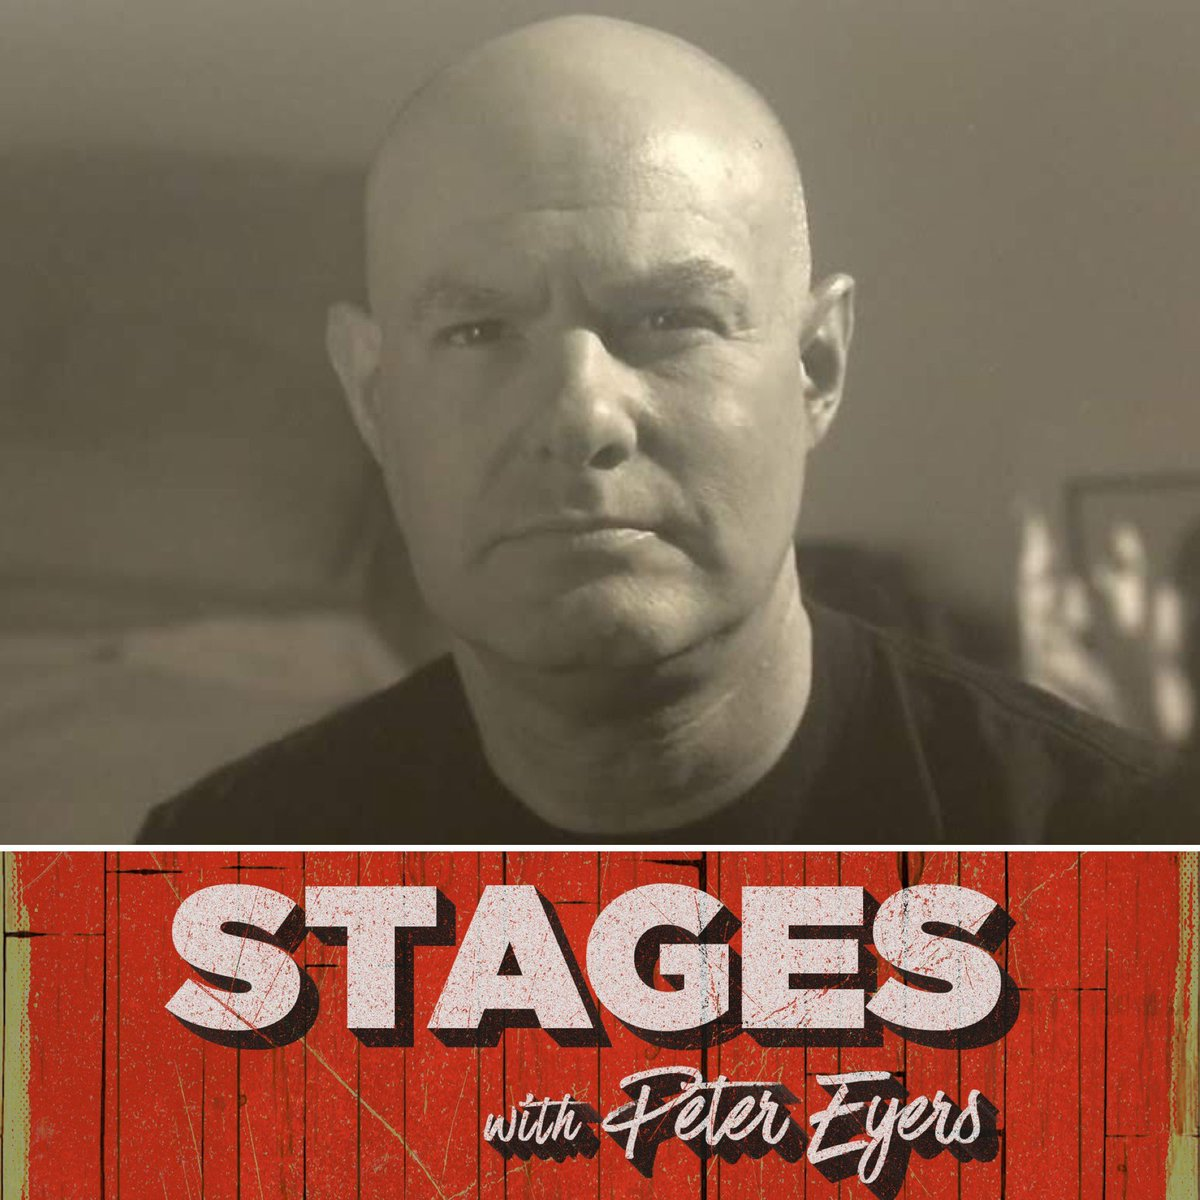 STAGES with Peter Eyers - Theatre Producer - Sam Levy https://t.co/E37fMSLffg via @whooshkaa @PeterEyers #stages https://t.co/kRXvrjyQz2